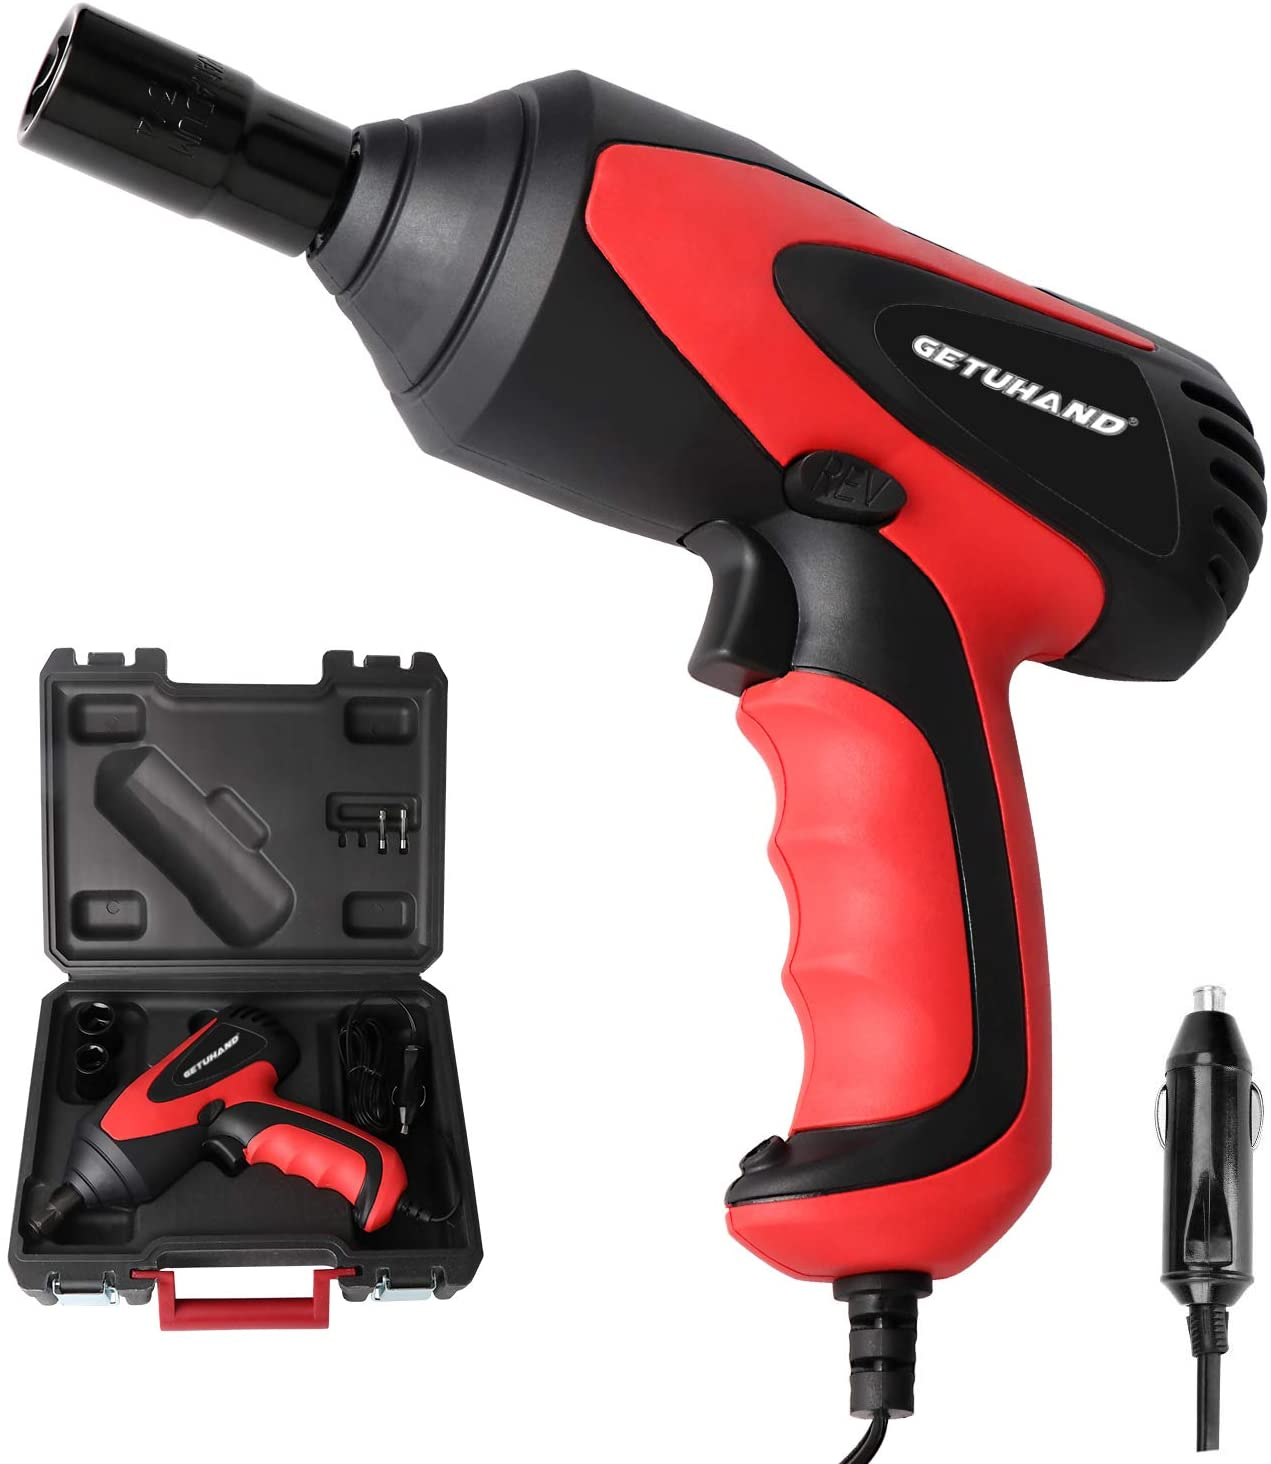 GETUHAND BT033 Portable Electric Car Impact Wrench, Tire Repair Tools